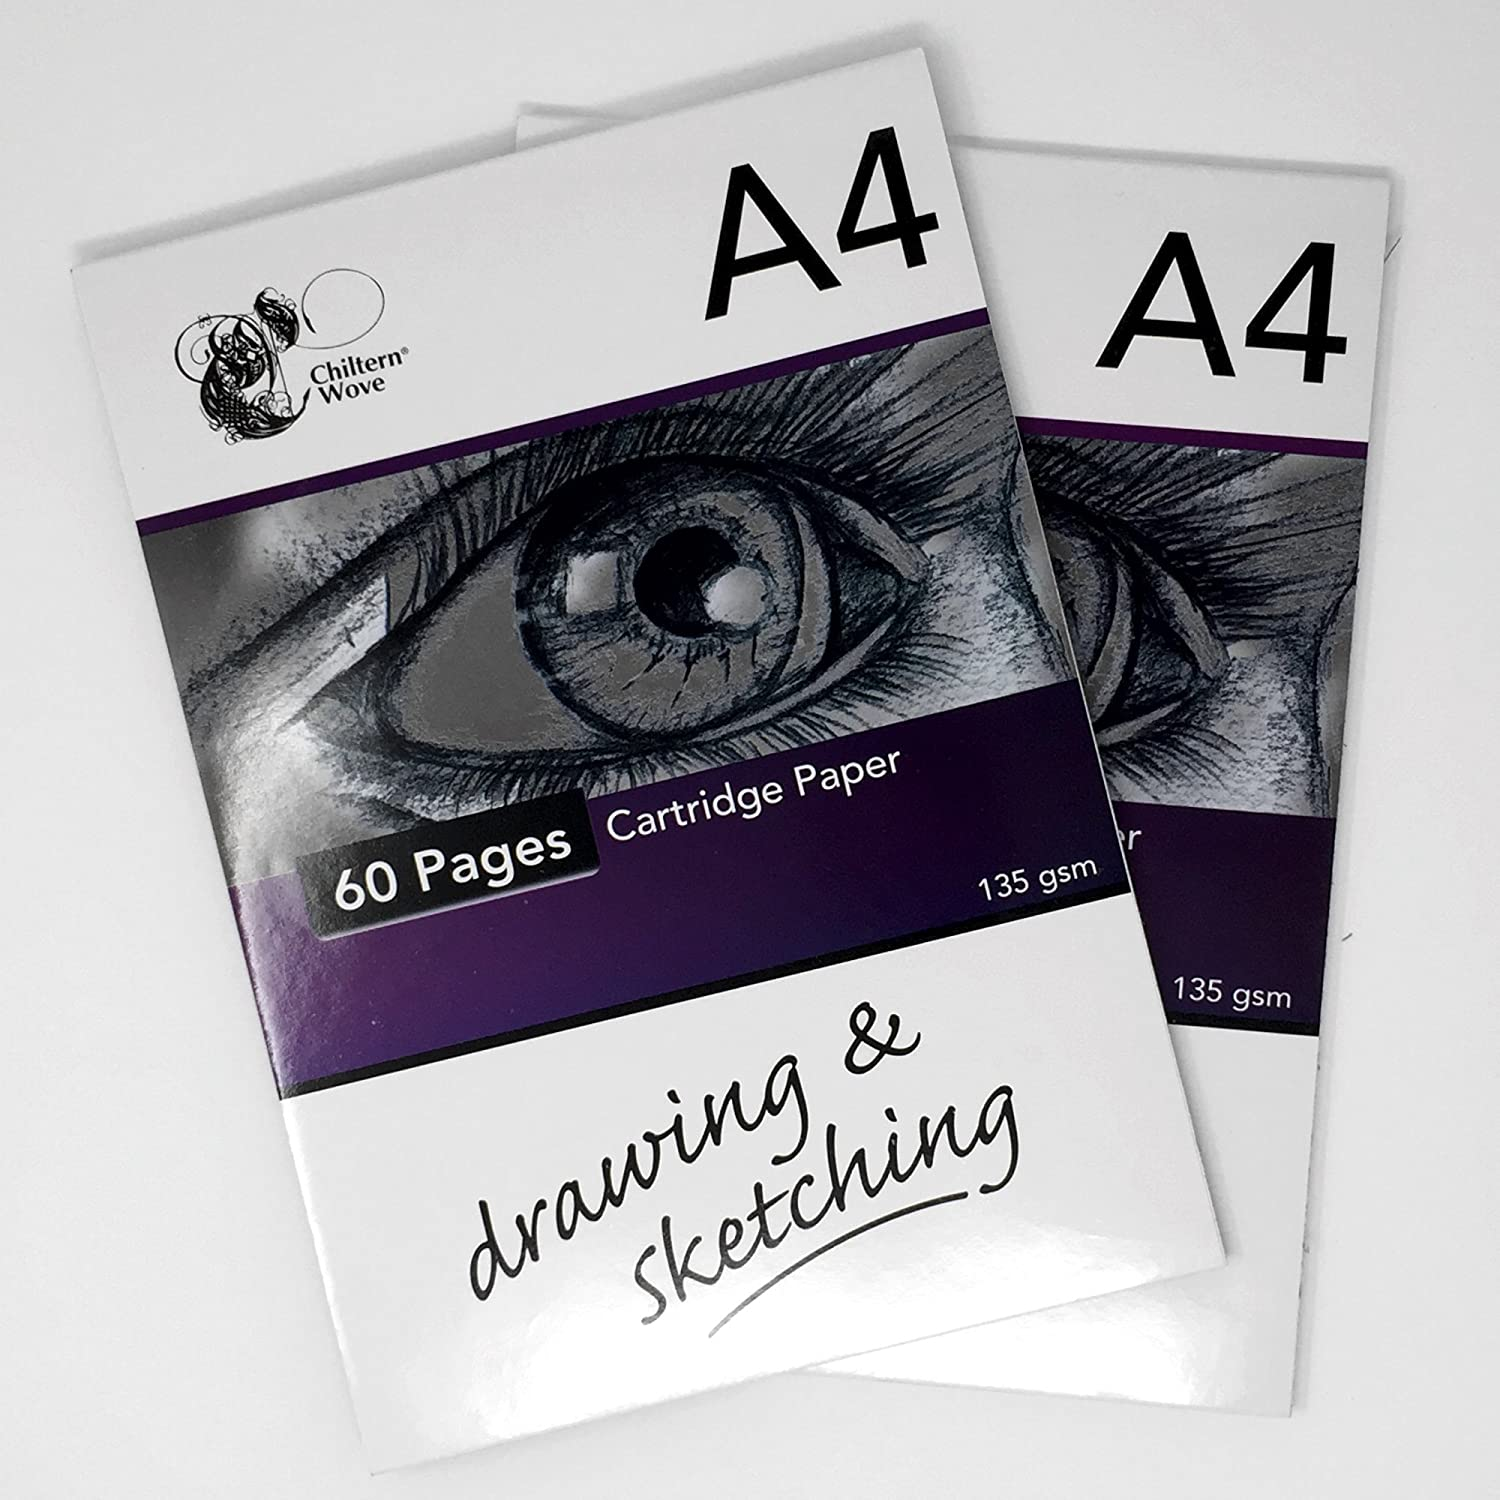 135gsm Cartridge Paper/2 Packs of 60 pages 151